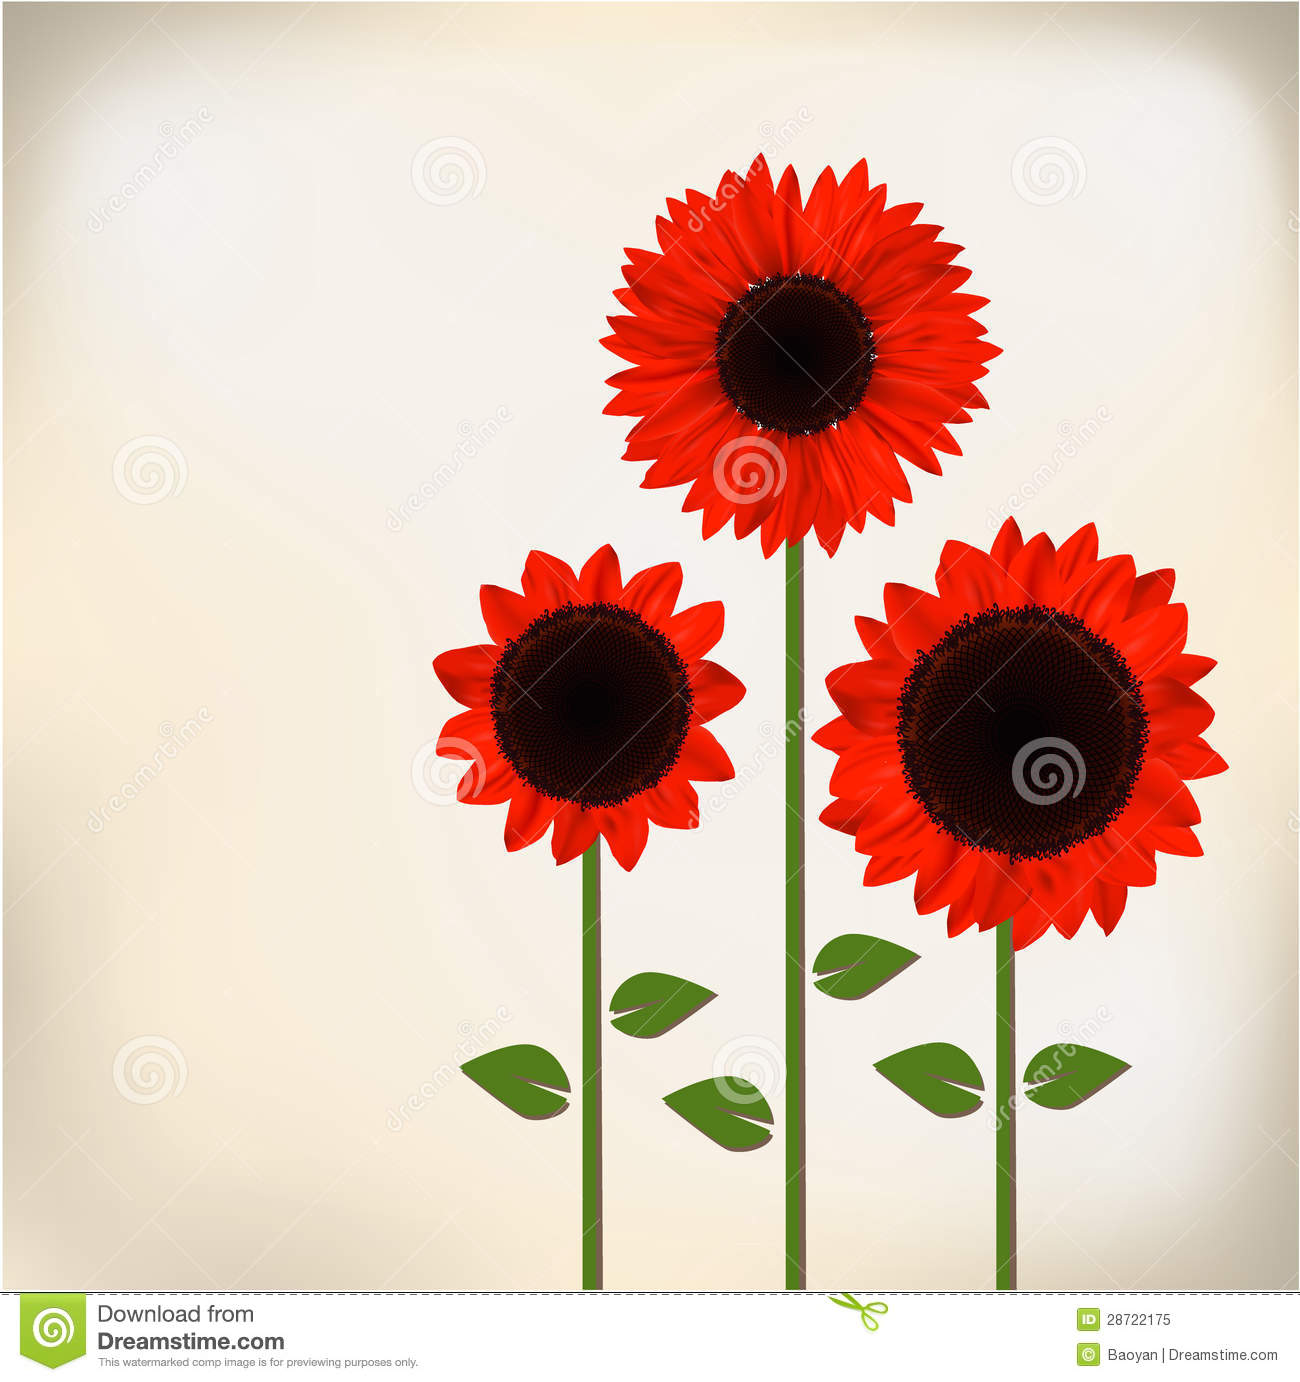 Red Sunflower Royalty Free Stock Photo.